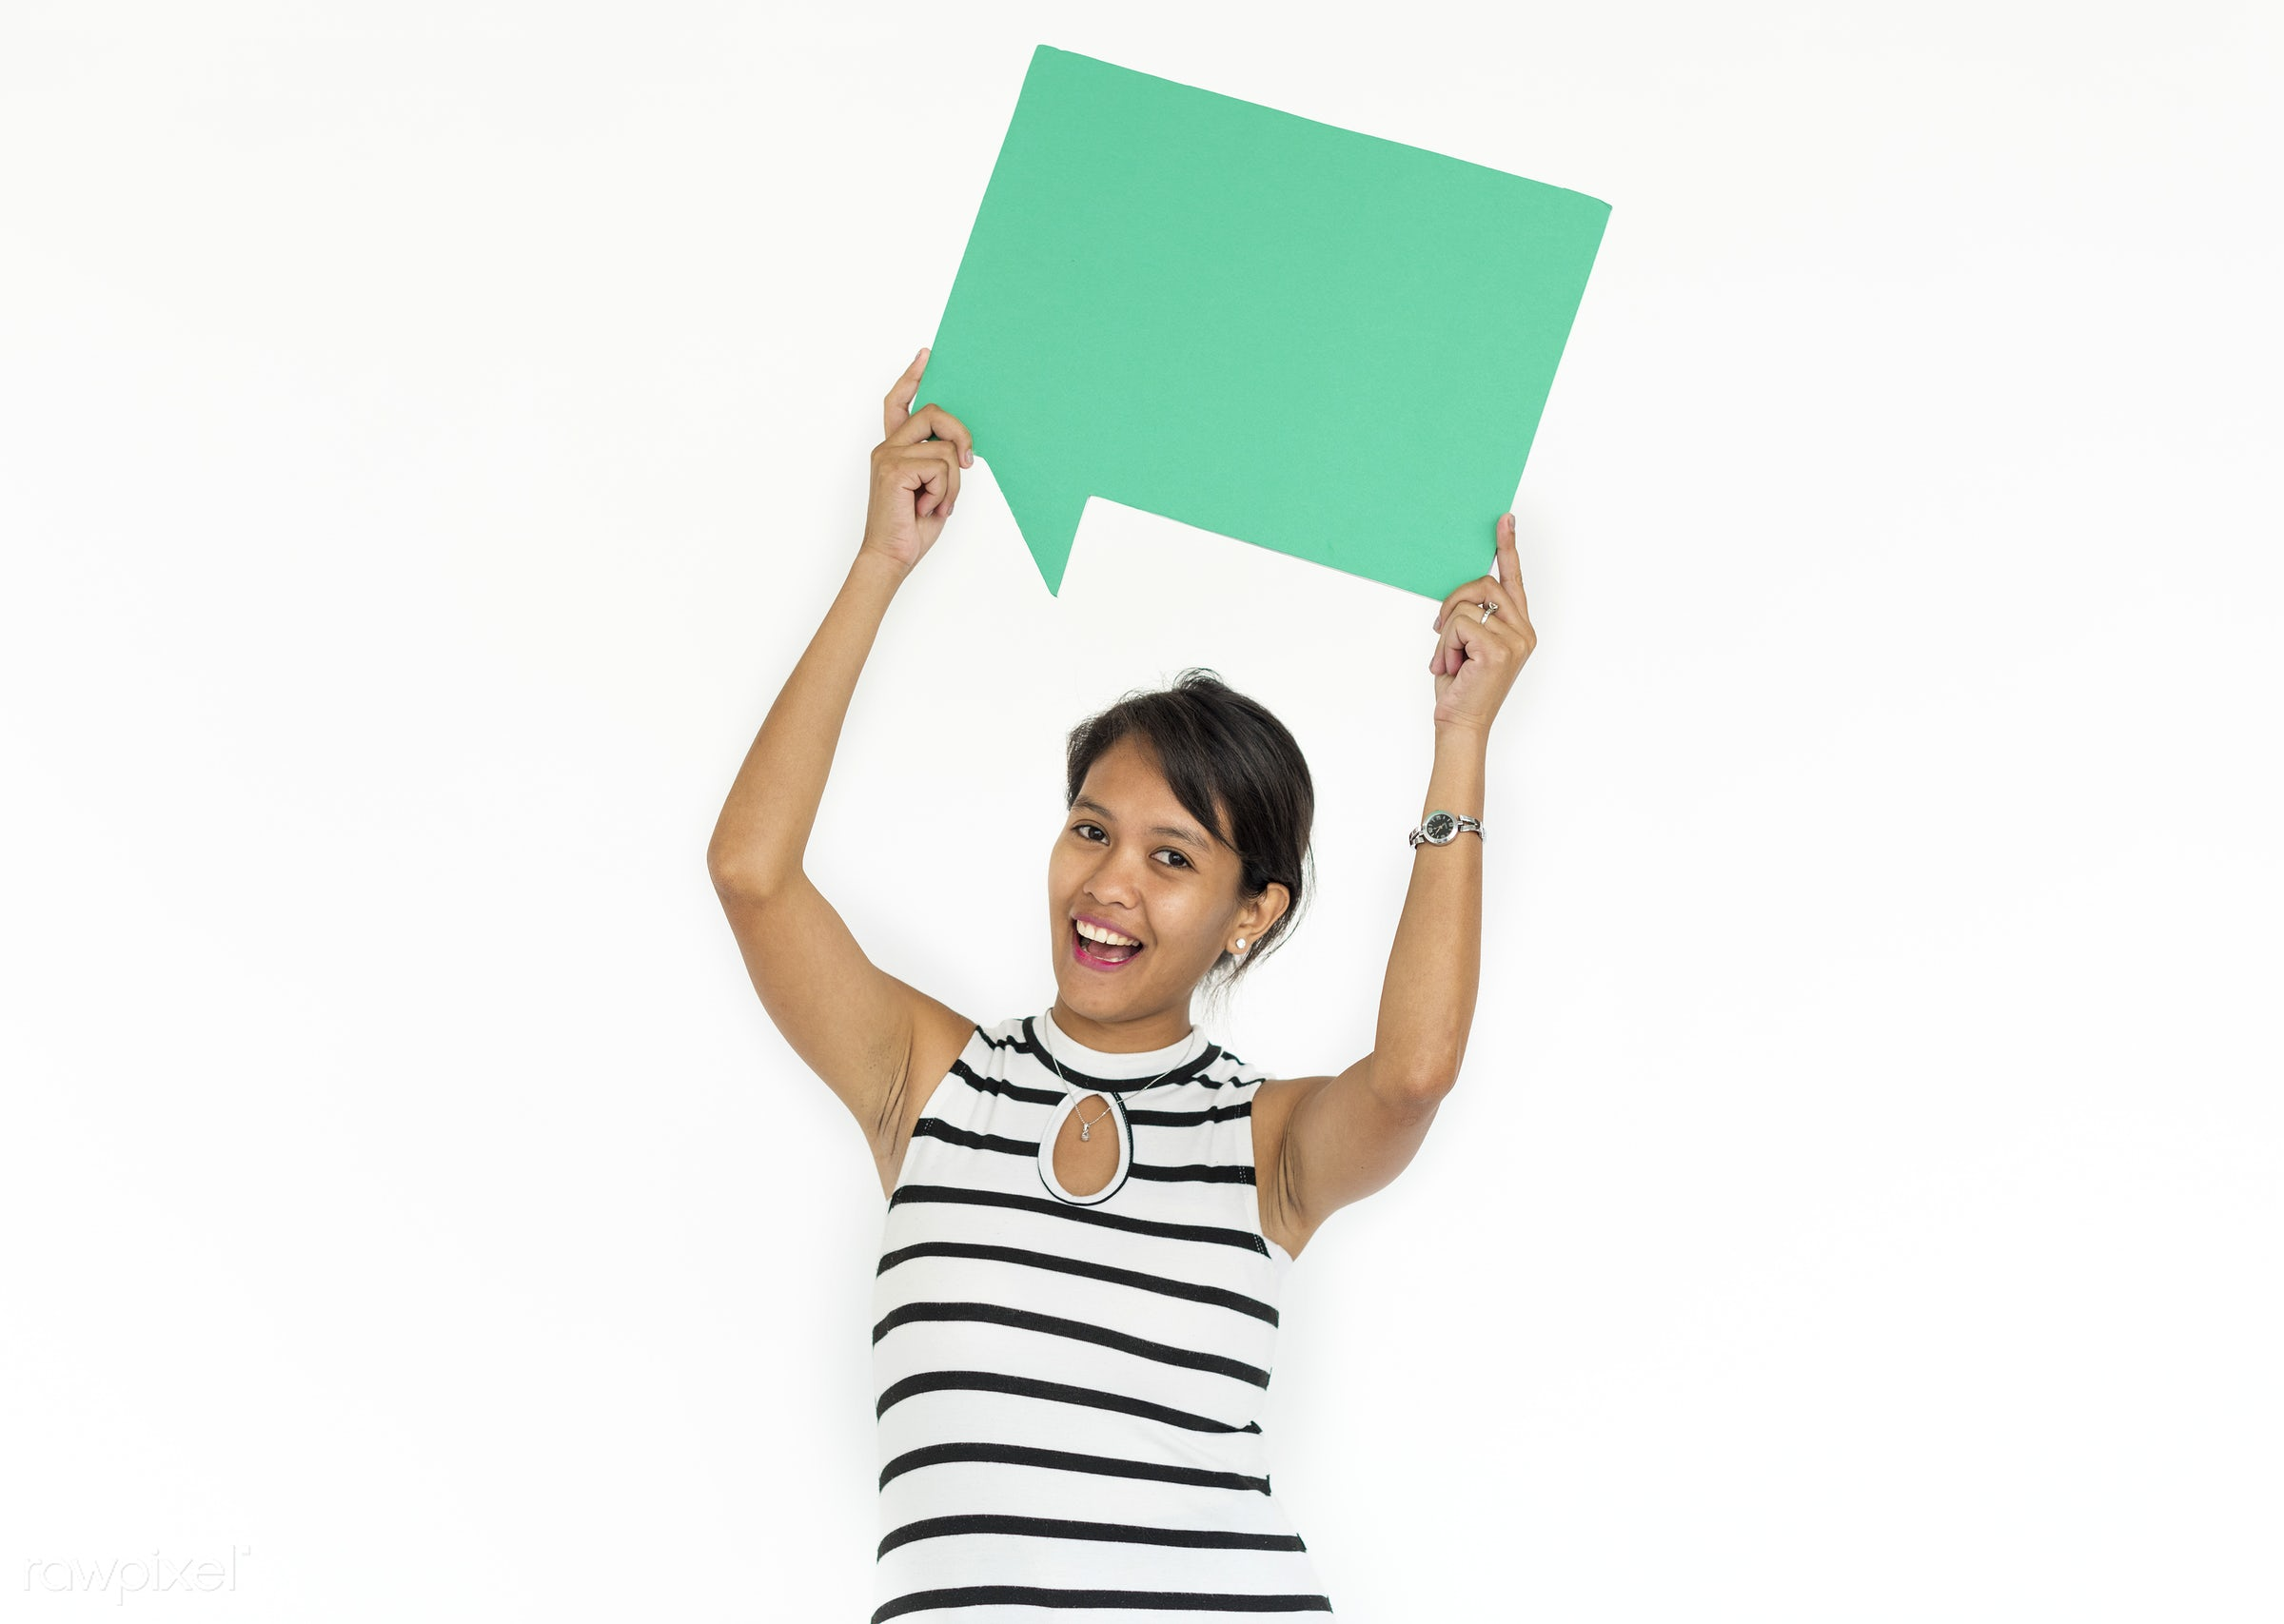 studio, expression, person, holding, isolated on white, hilarious, people, asian ethnicity, woman, speech bubble, happy,...